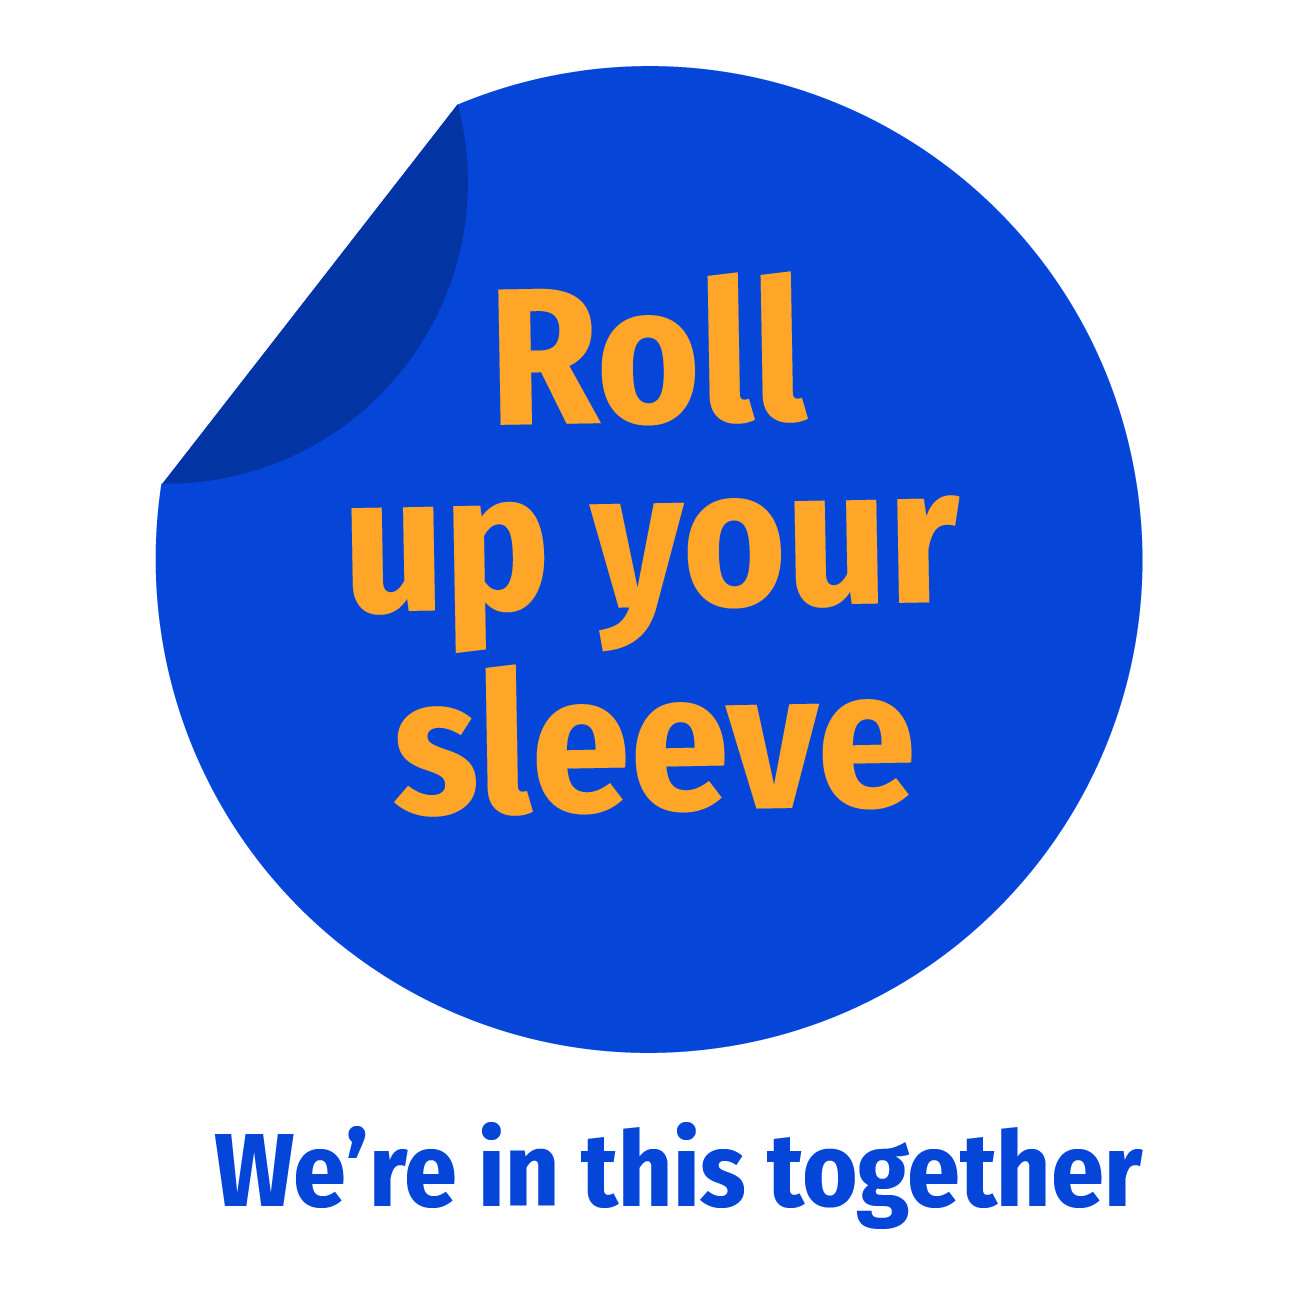 Roll up your sleeve